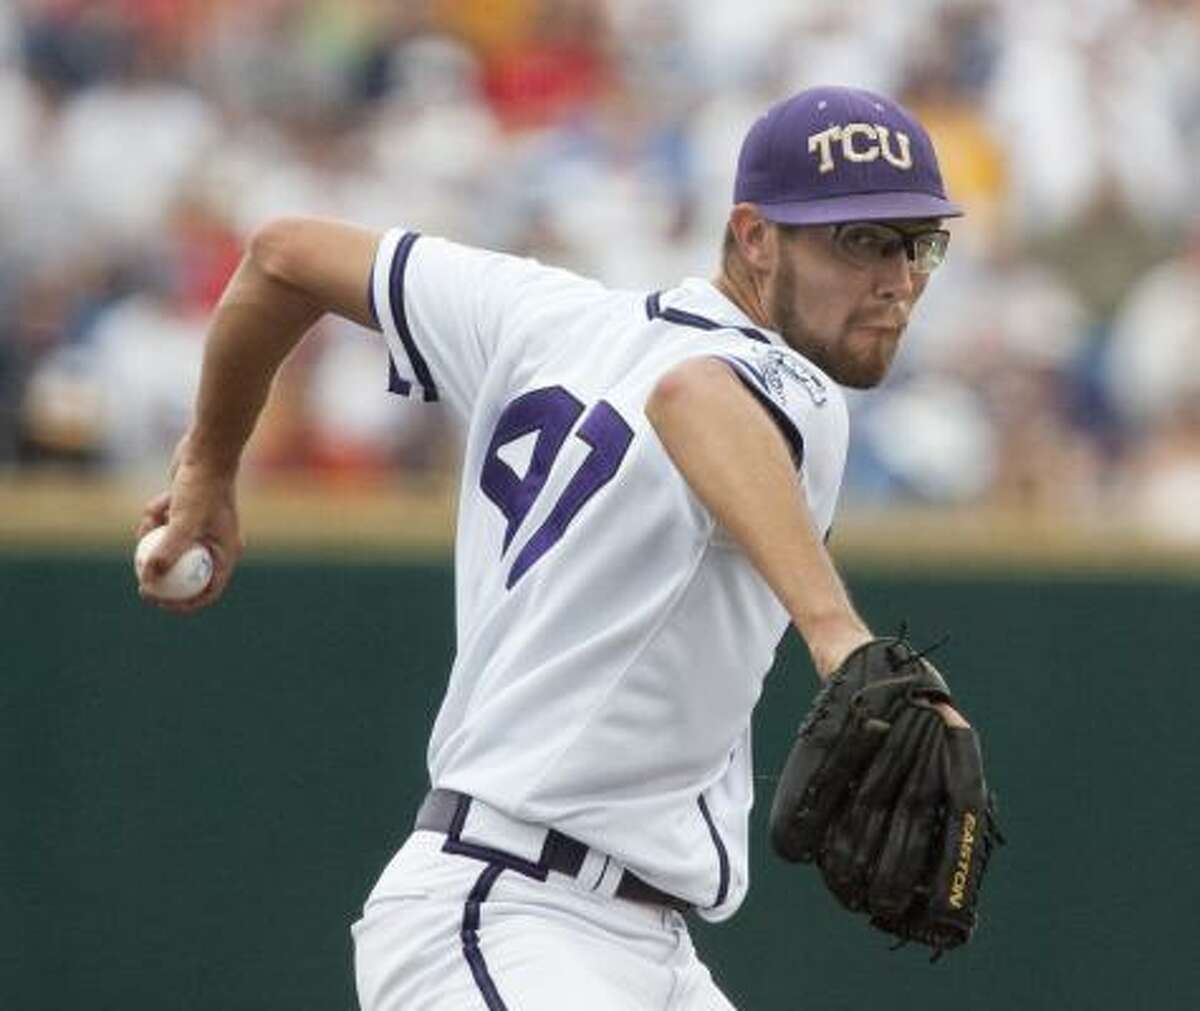 Klein product Matt Purke pitched TCU to its first-ever CWS win, relying on help from catcher Bryan Holaday.